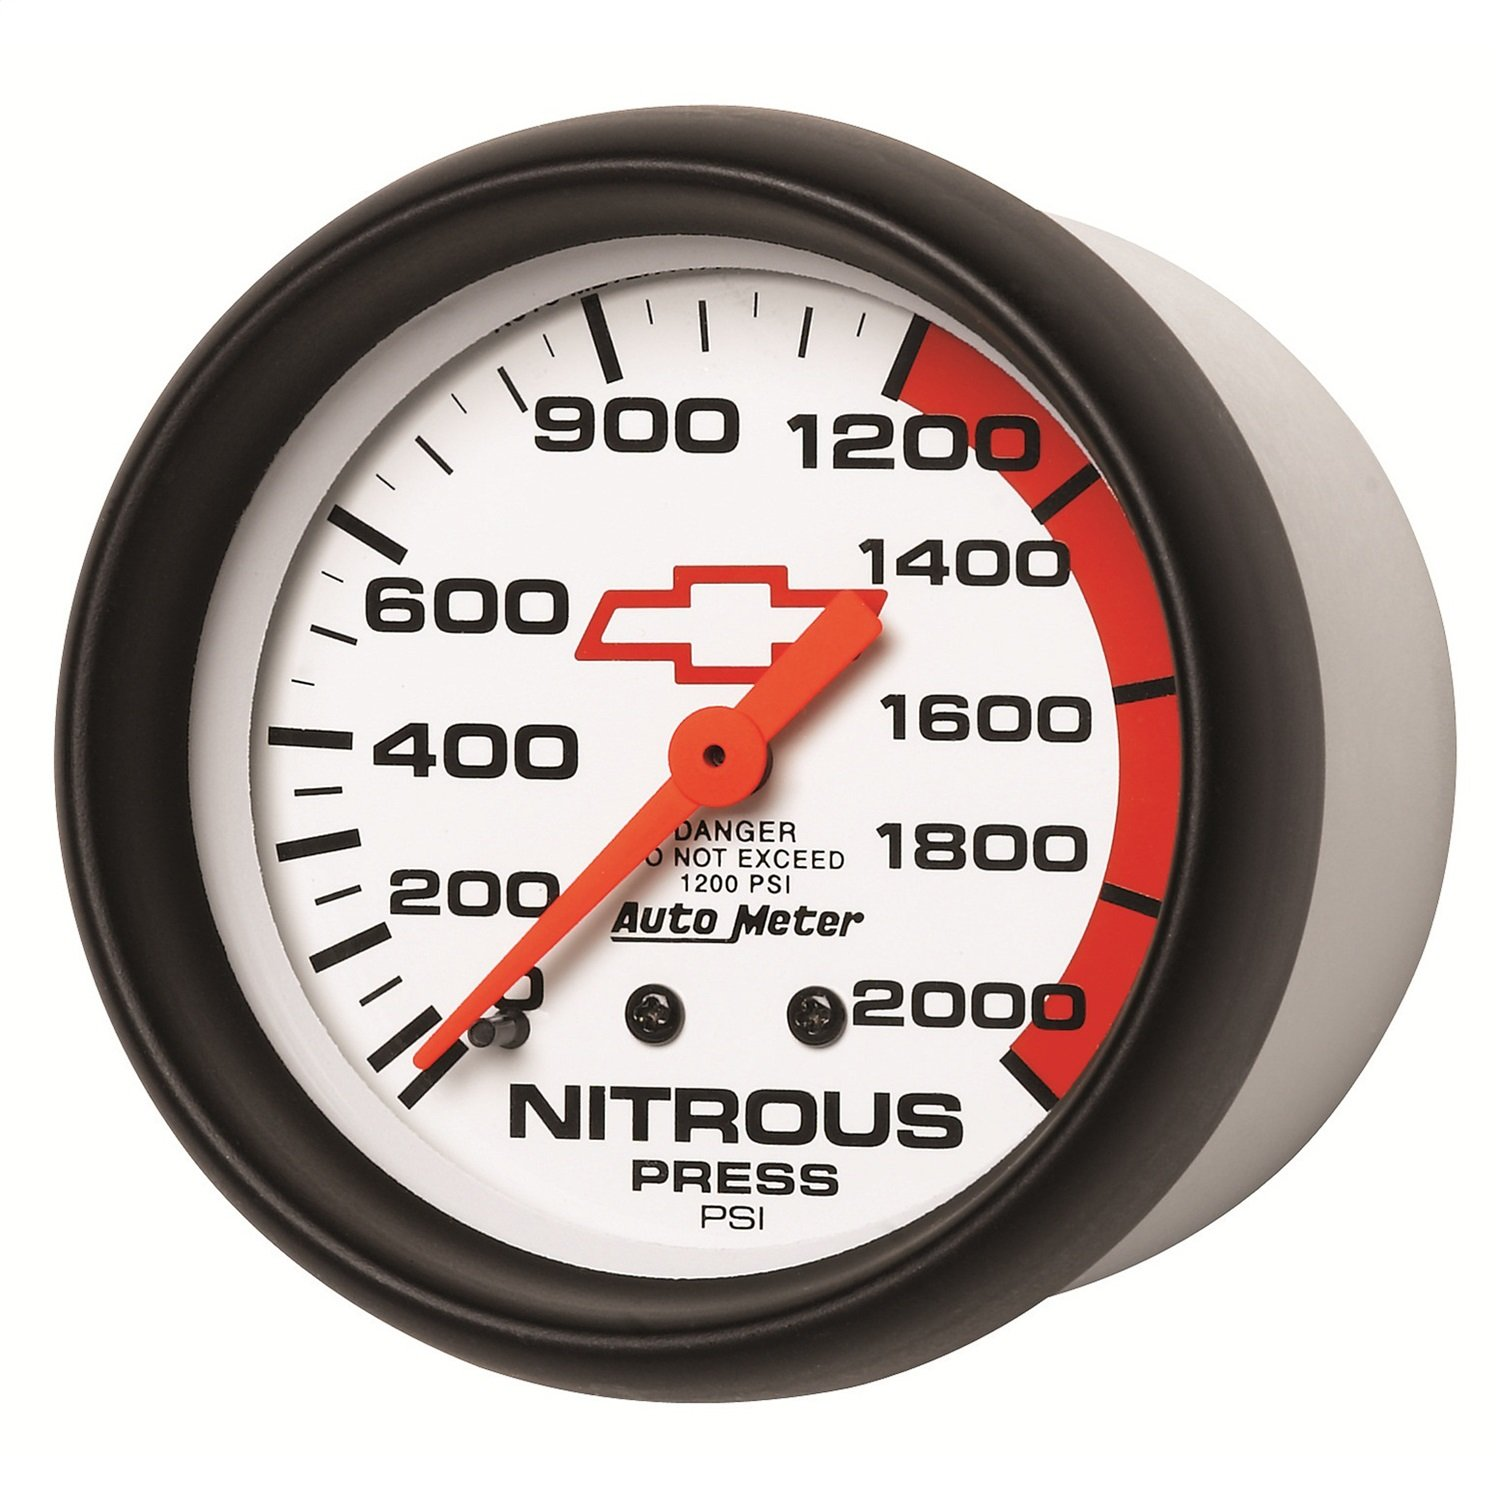 Auto Meter 5828-00406 GM Performance Parts 2-5/8' 0-2000 PSI Mechanical Nitrous Pressure Gauge